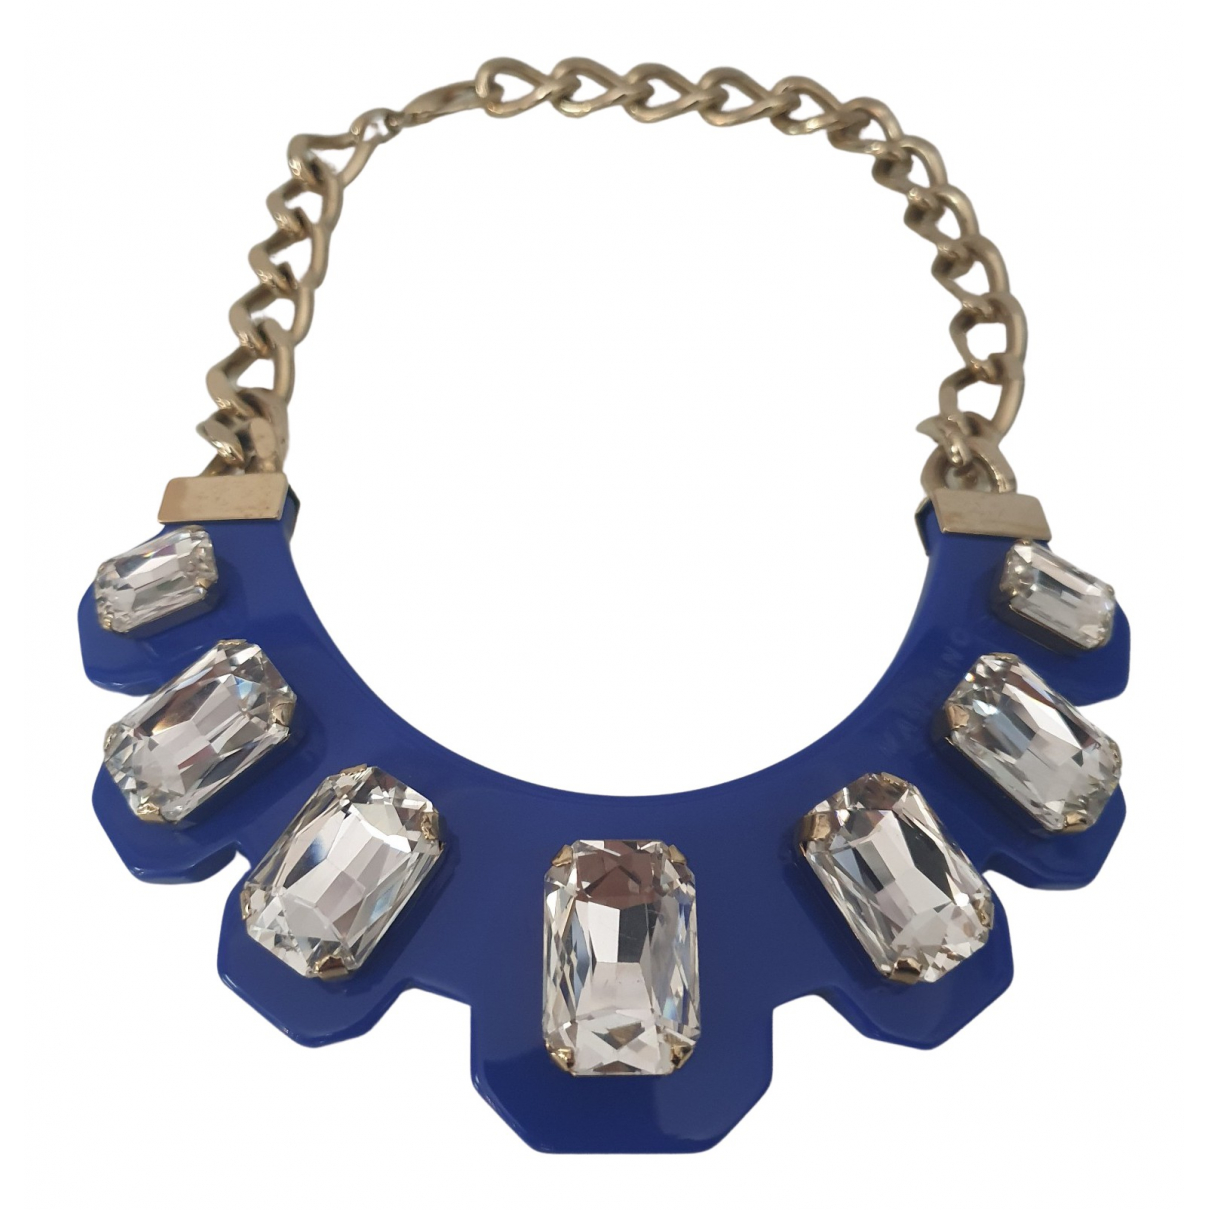 Mangano N Multicolour necklace for Women N